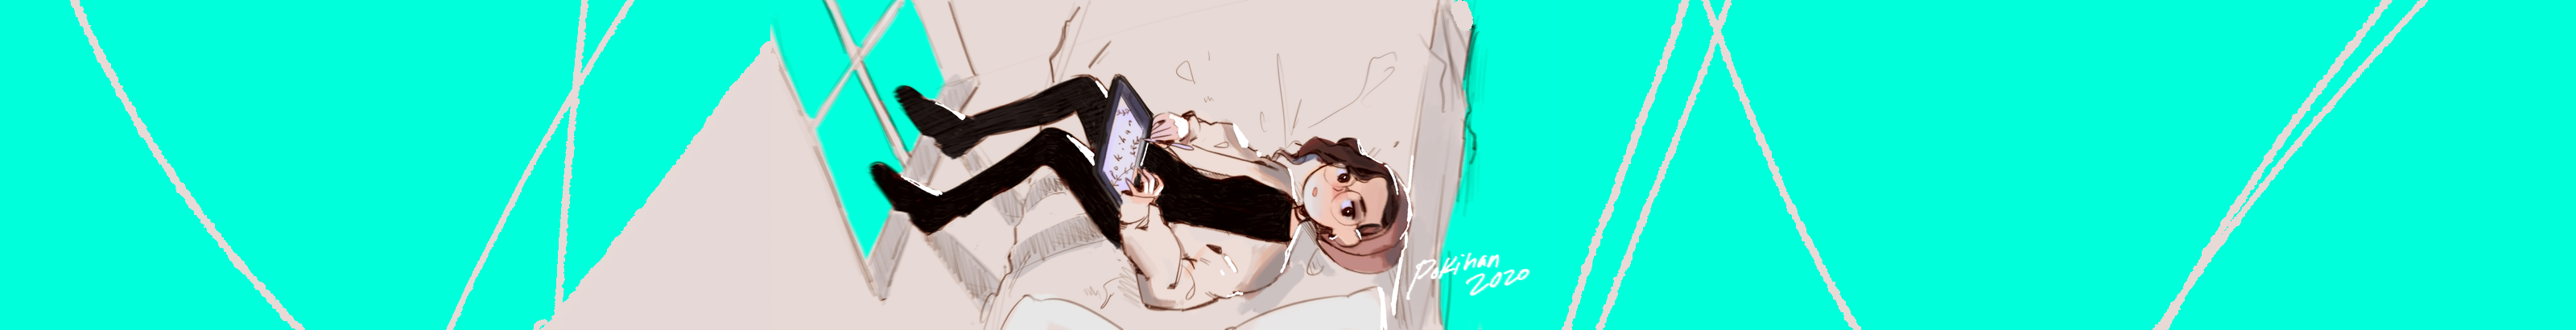 Any requests? Illust of poki.han requests video Suggestions YouTube pokihan